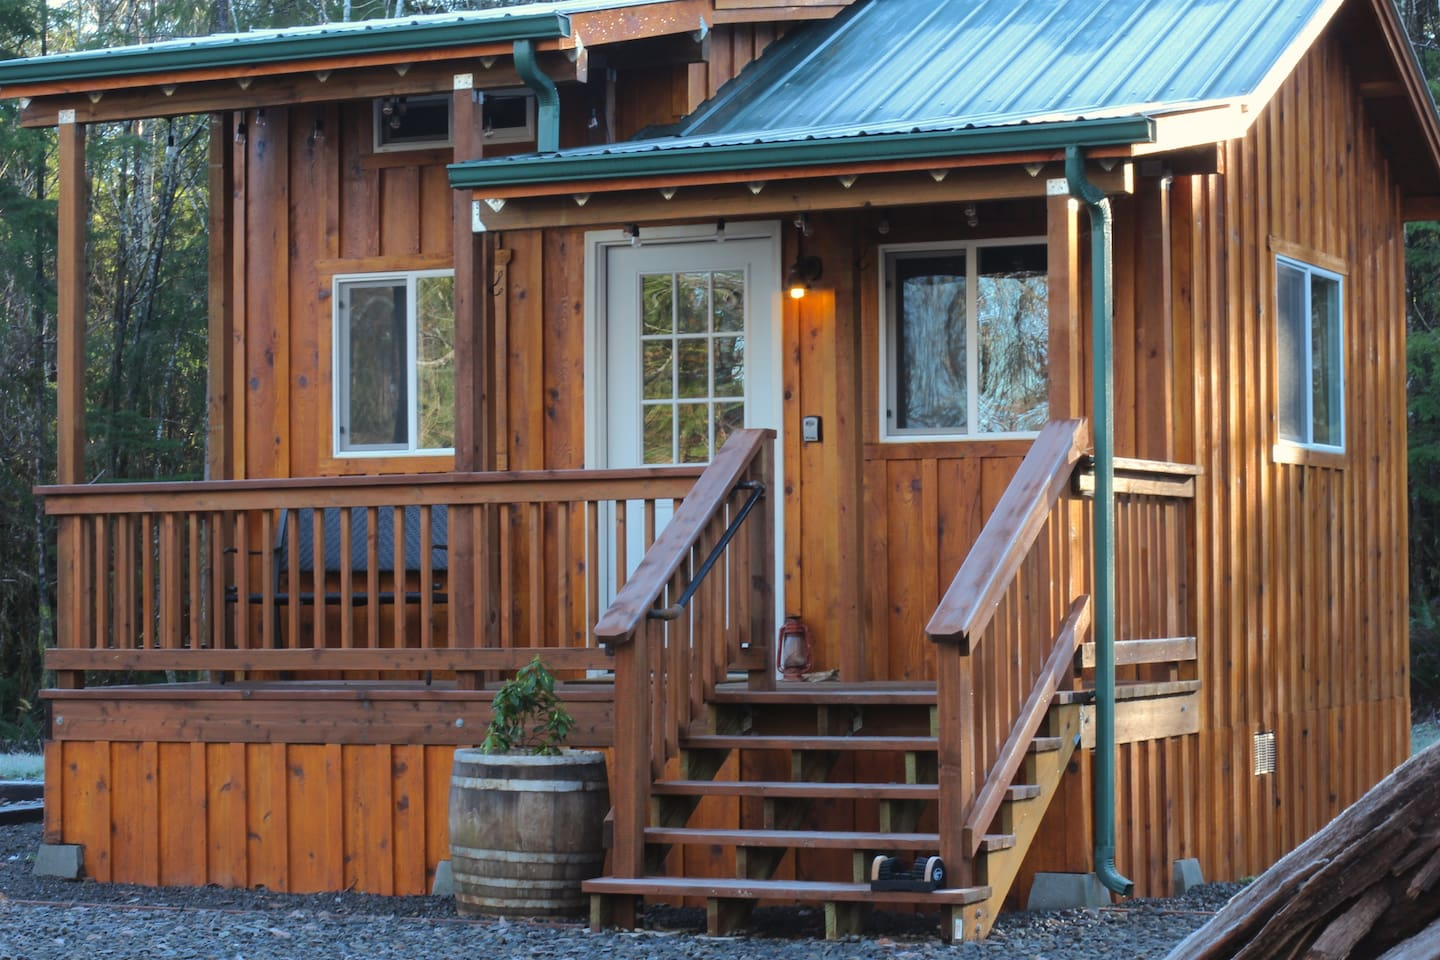 Cabin includes covered seating area with string lights, a hand rail and boot brush to clean off dirt before entering cabin.